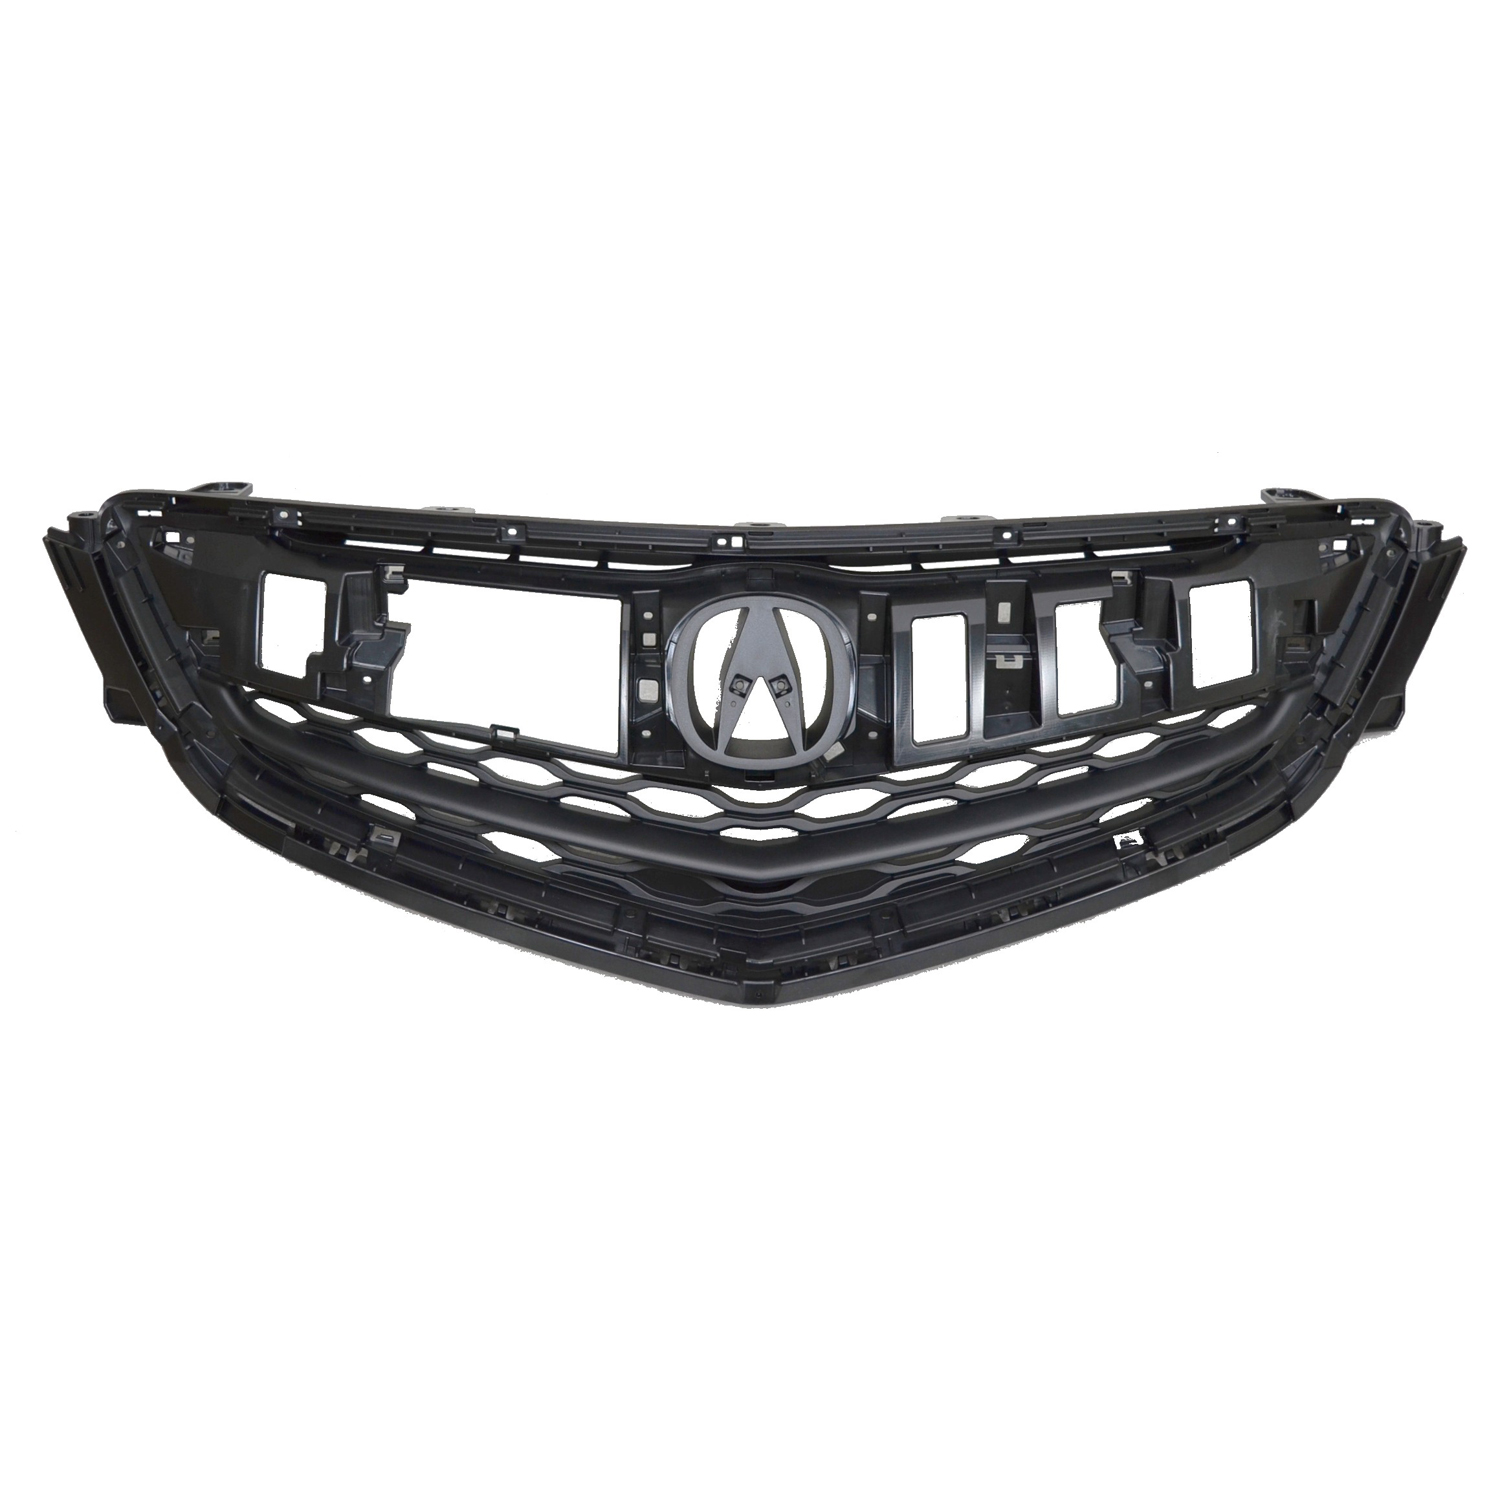 AC1200124C New Replacement Front Grille Fits 2015-2017